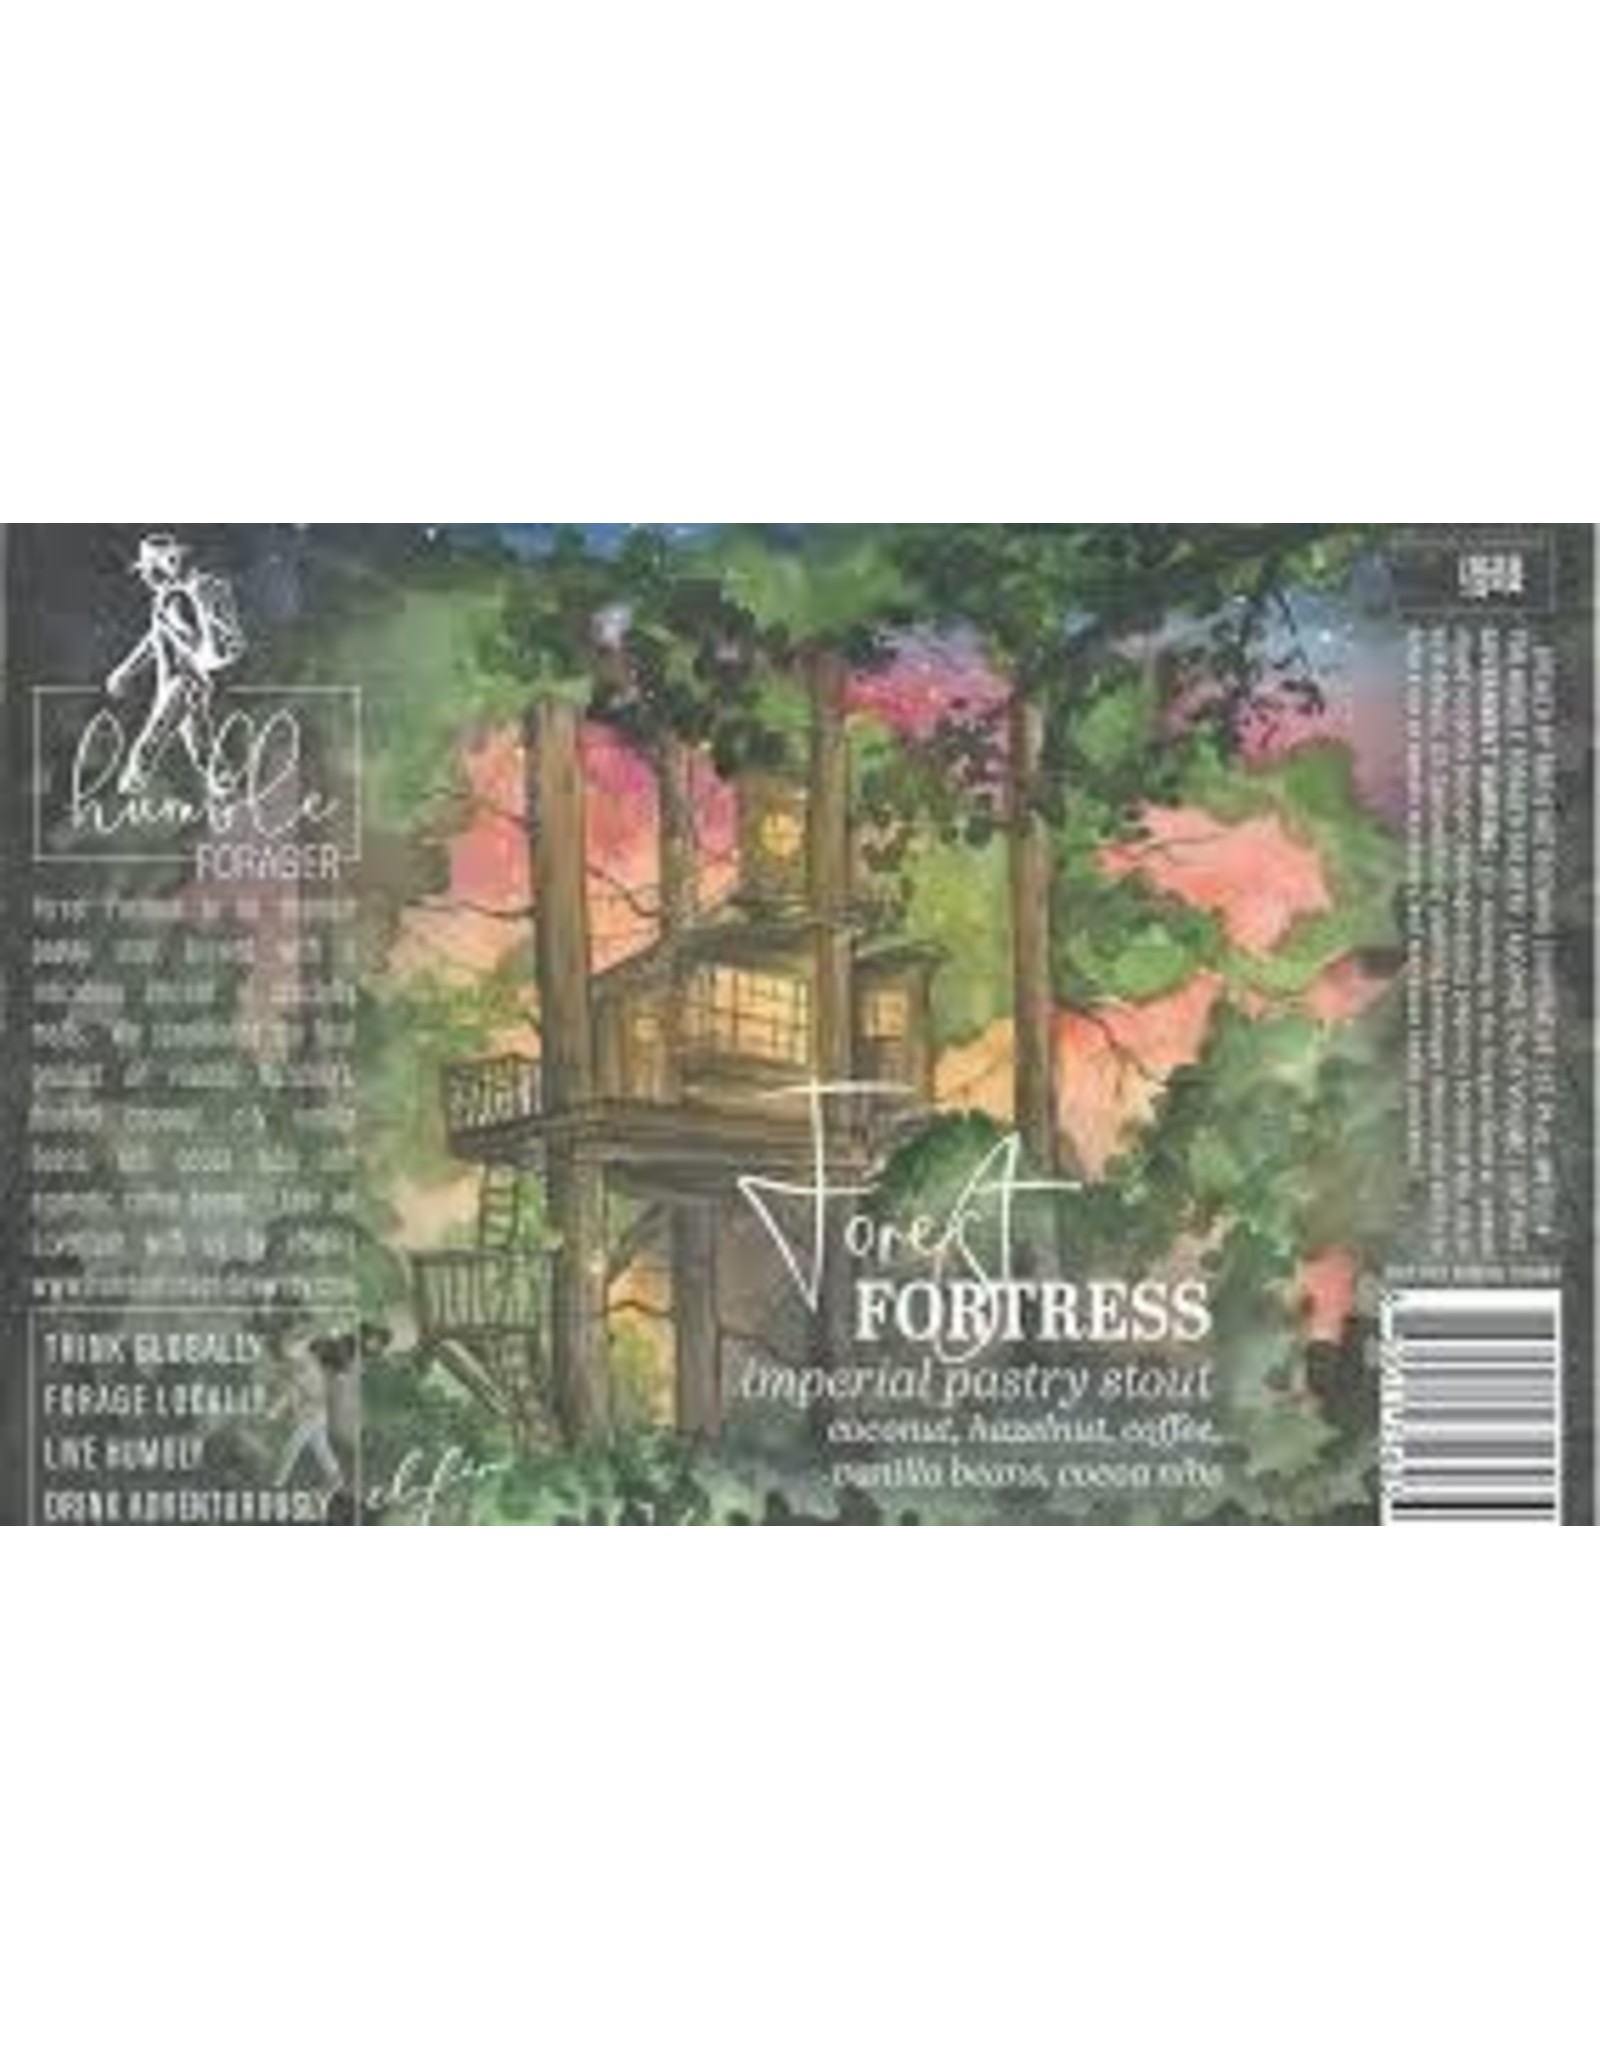 Humble Forager Humble Forager Forest Fortress single